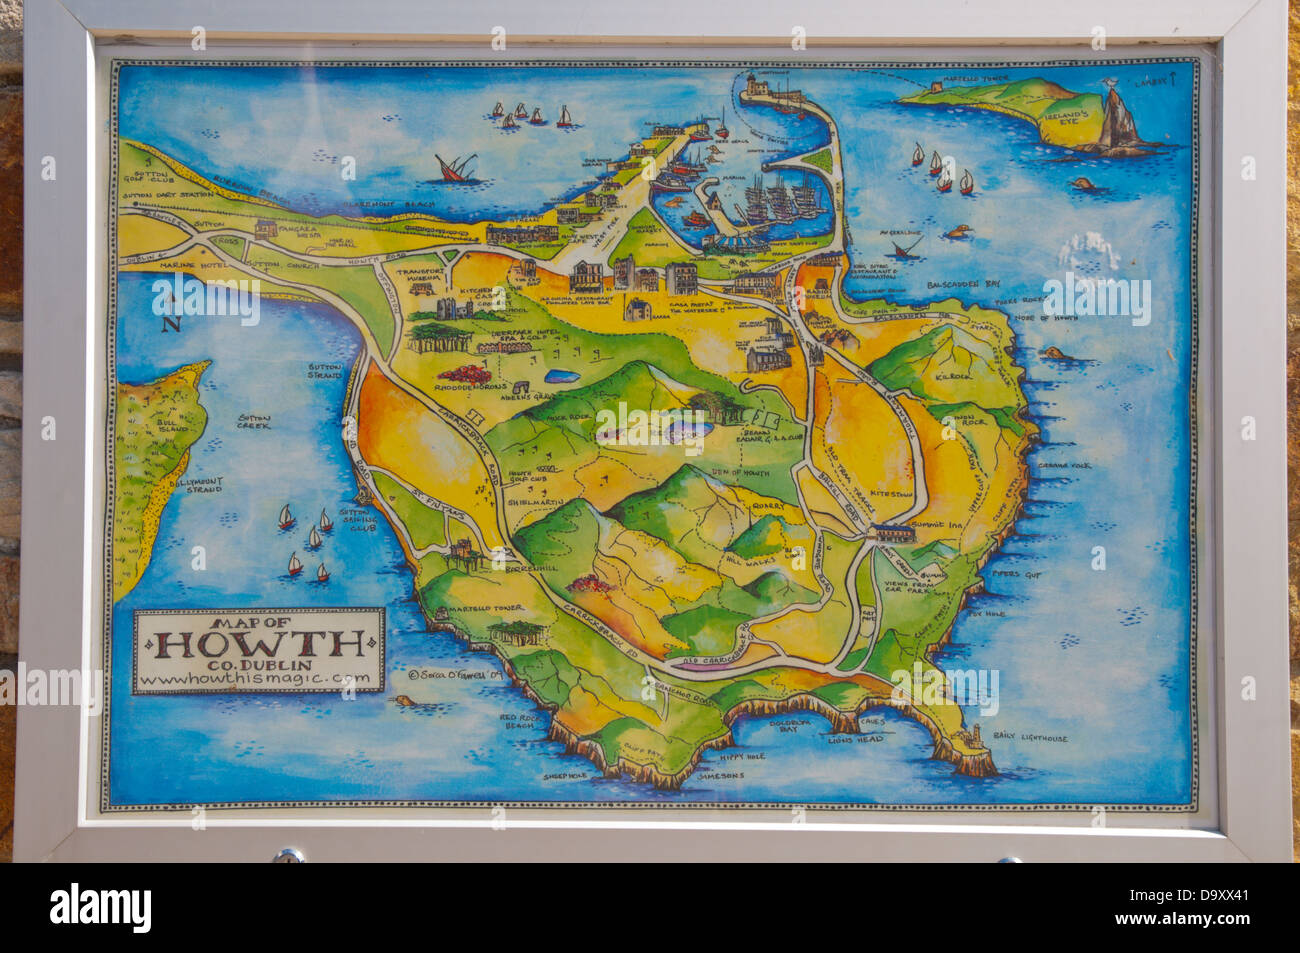 Map Of Ireland Near Dublin.Map Of Howth Peninsula Near Dublin Ireland Europe Stock Photo